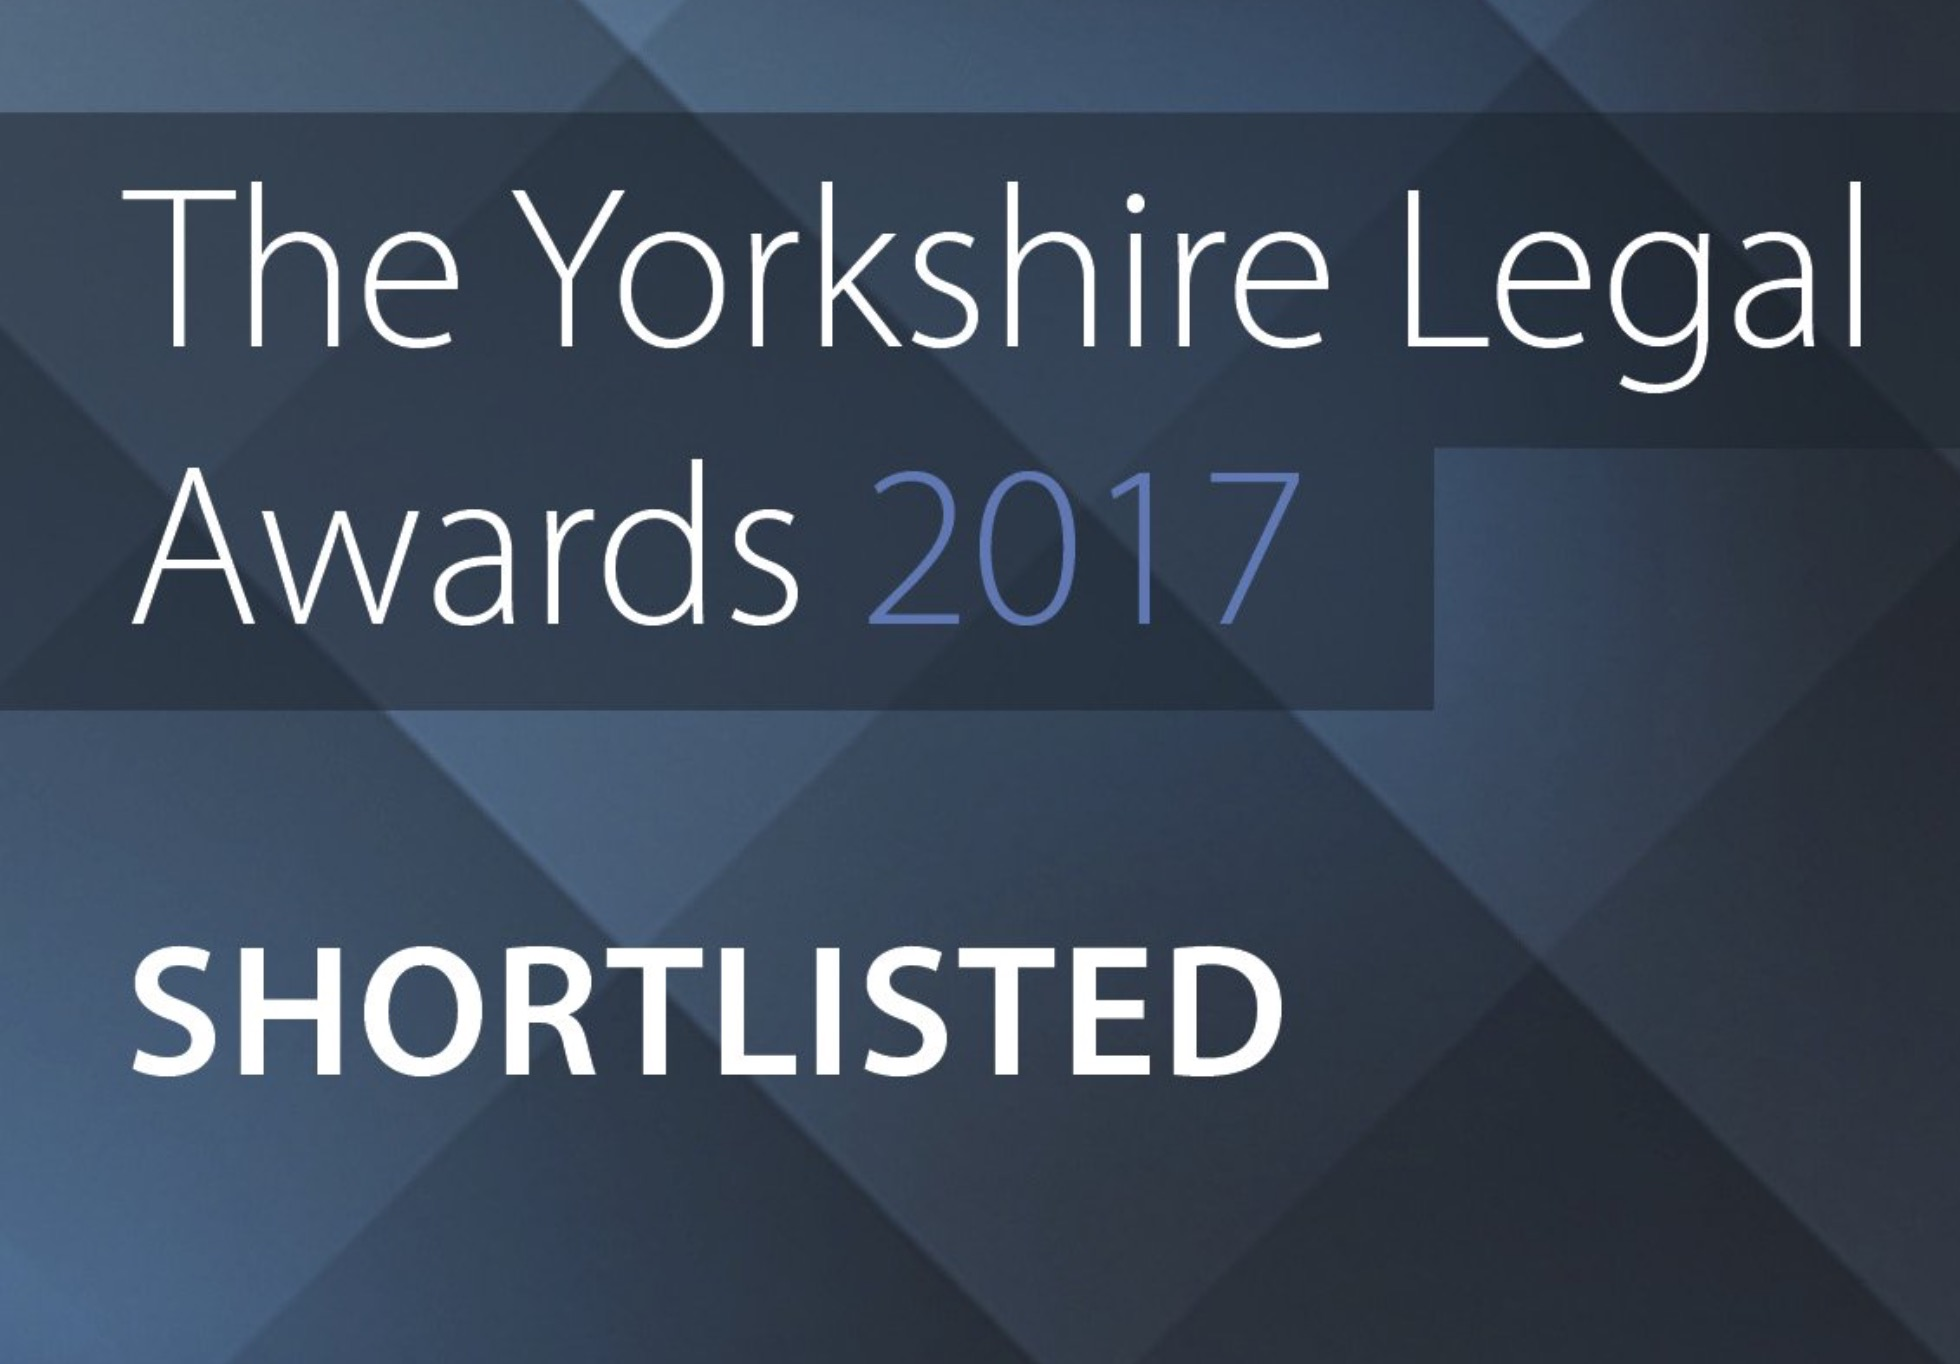 Yorkshire Legal Awards 2017